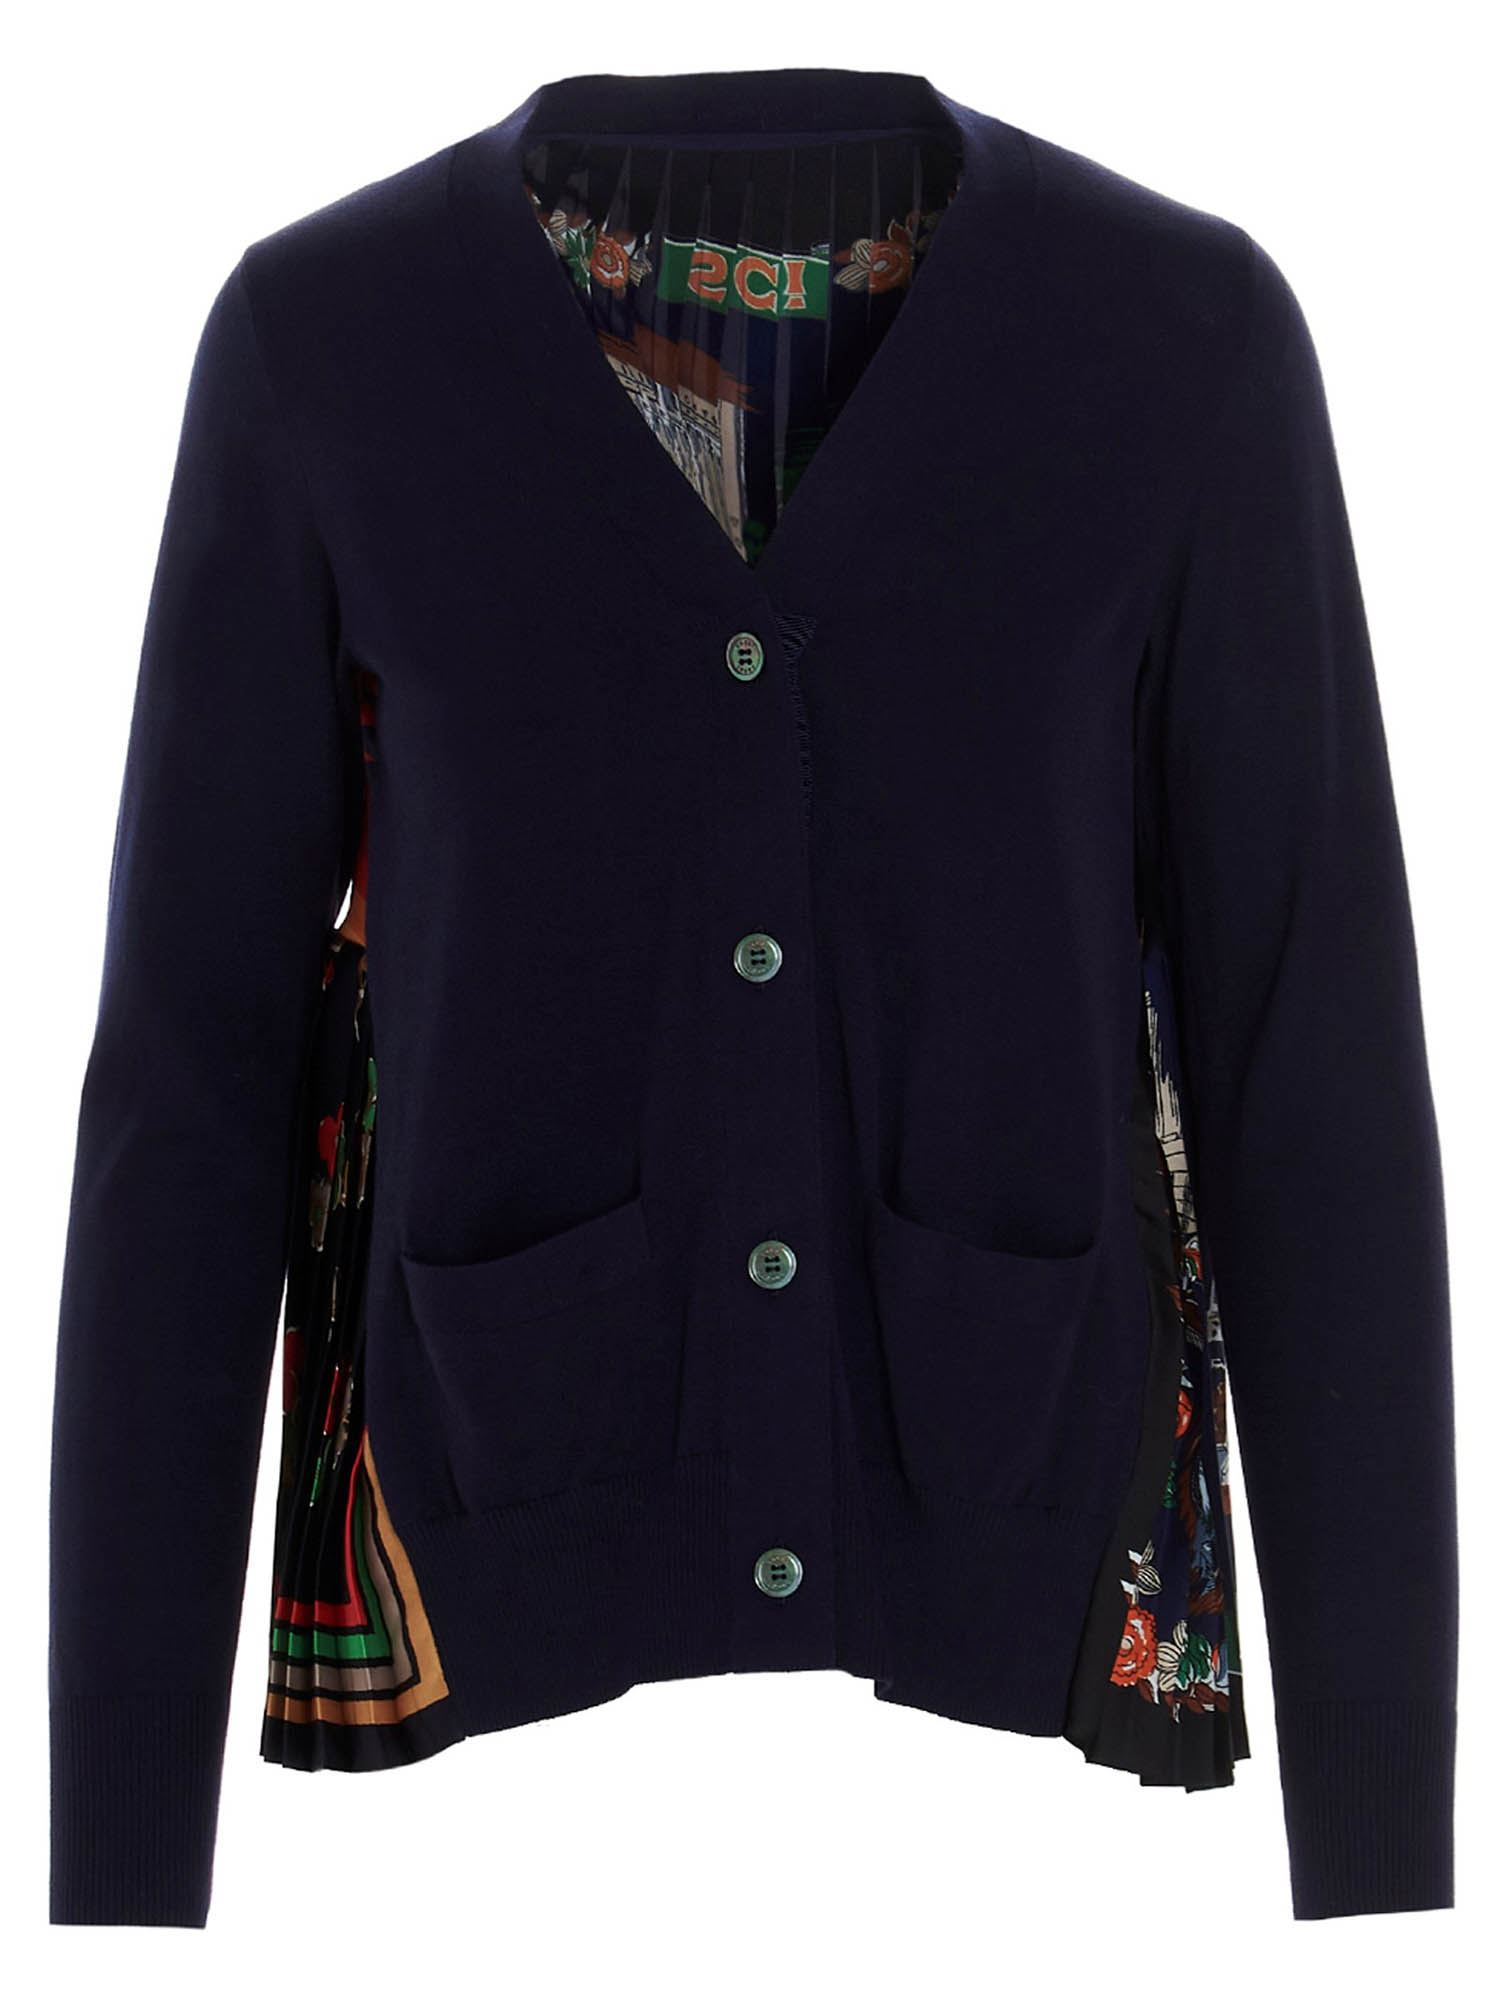 Sacai MULTICOLORED BACK CARDIGAN IN BLUE